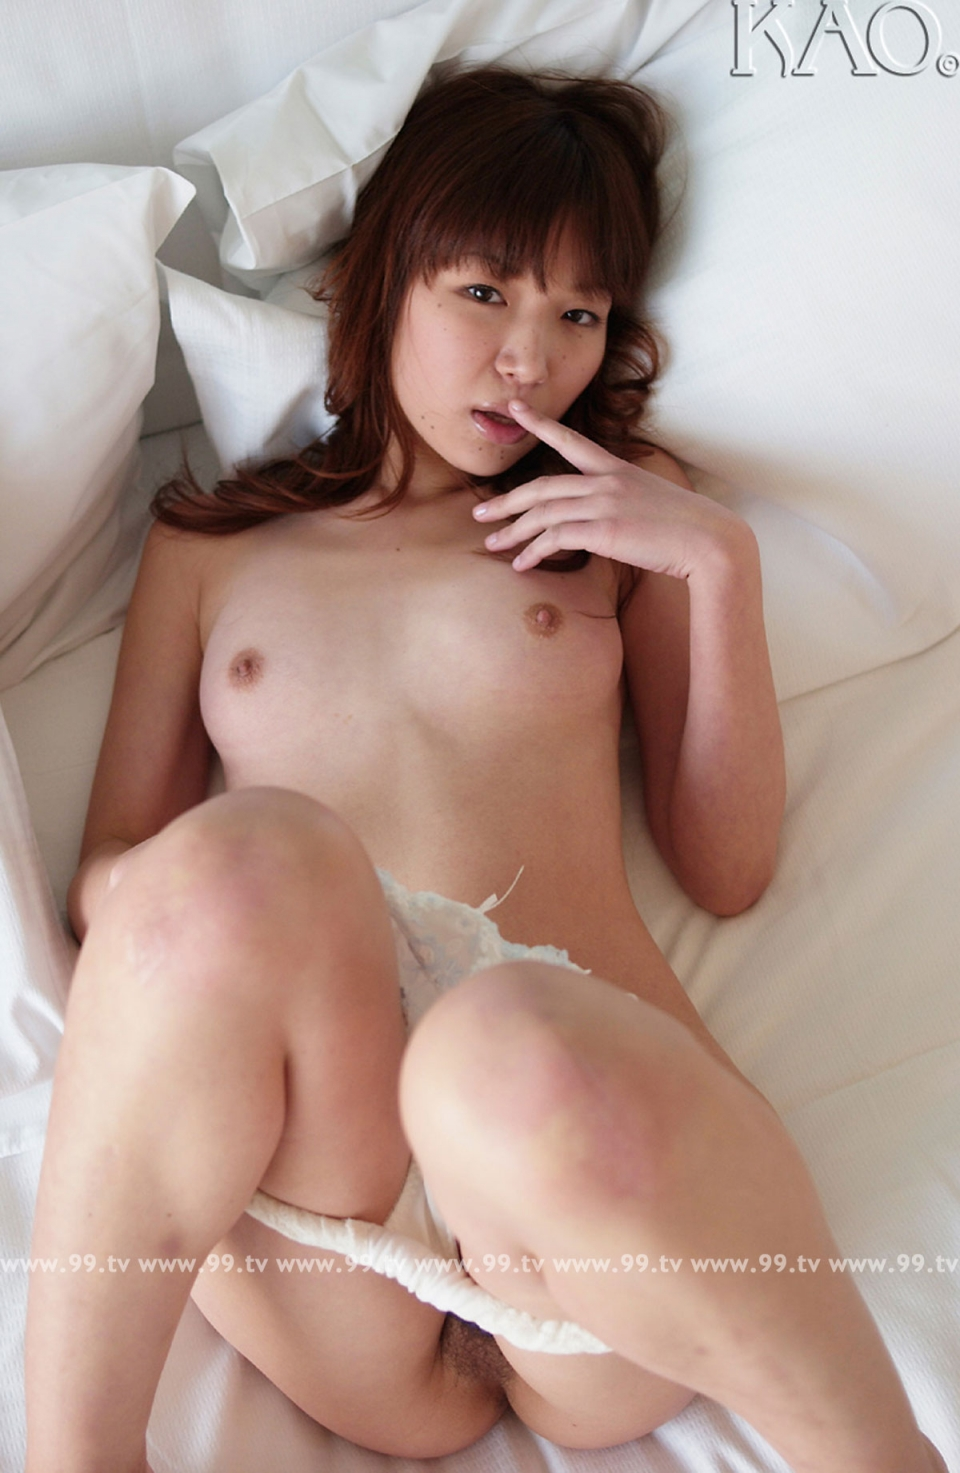 hong kong lady s nude dance